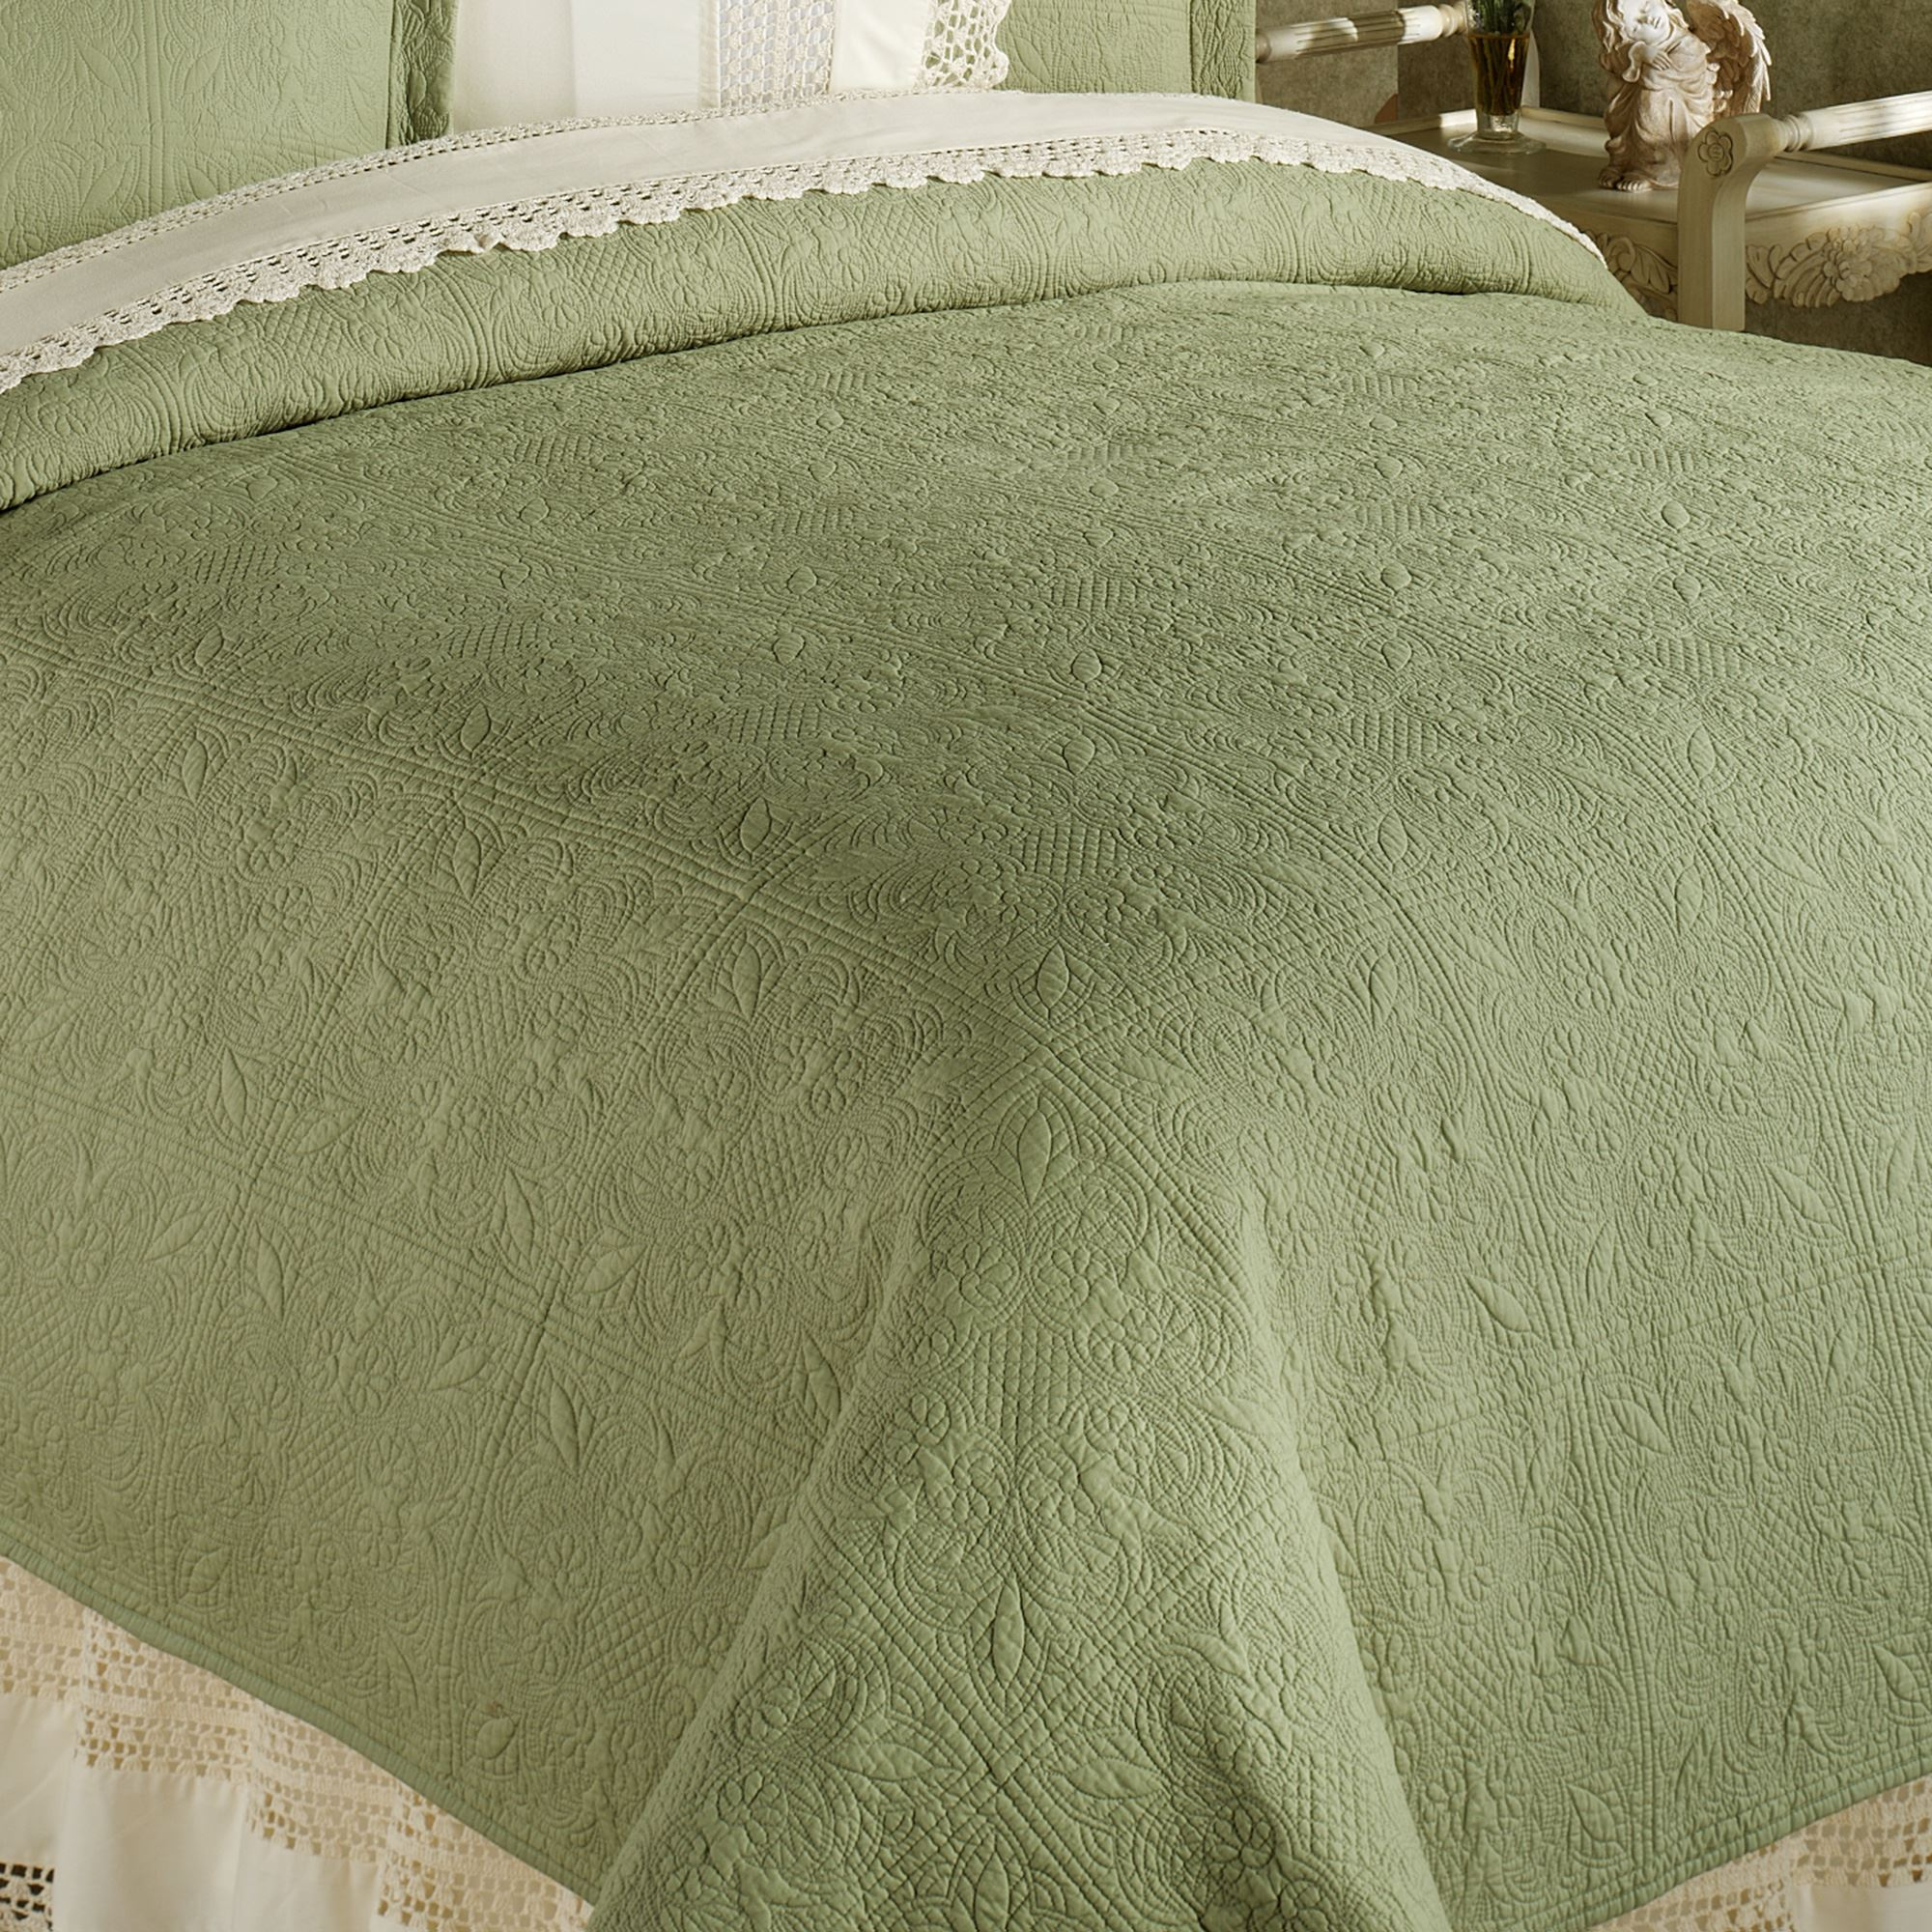 product your custom quilt in quilts modern meadow untitled green made btaylor sizes size